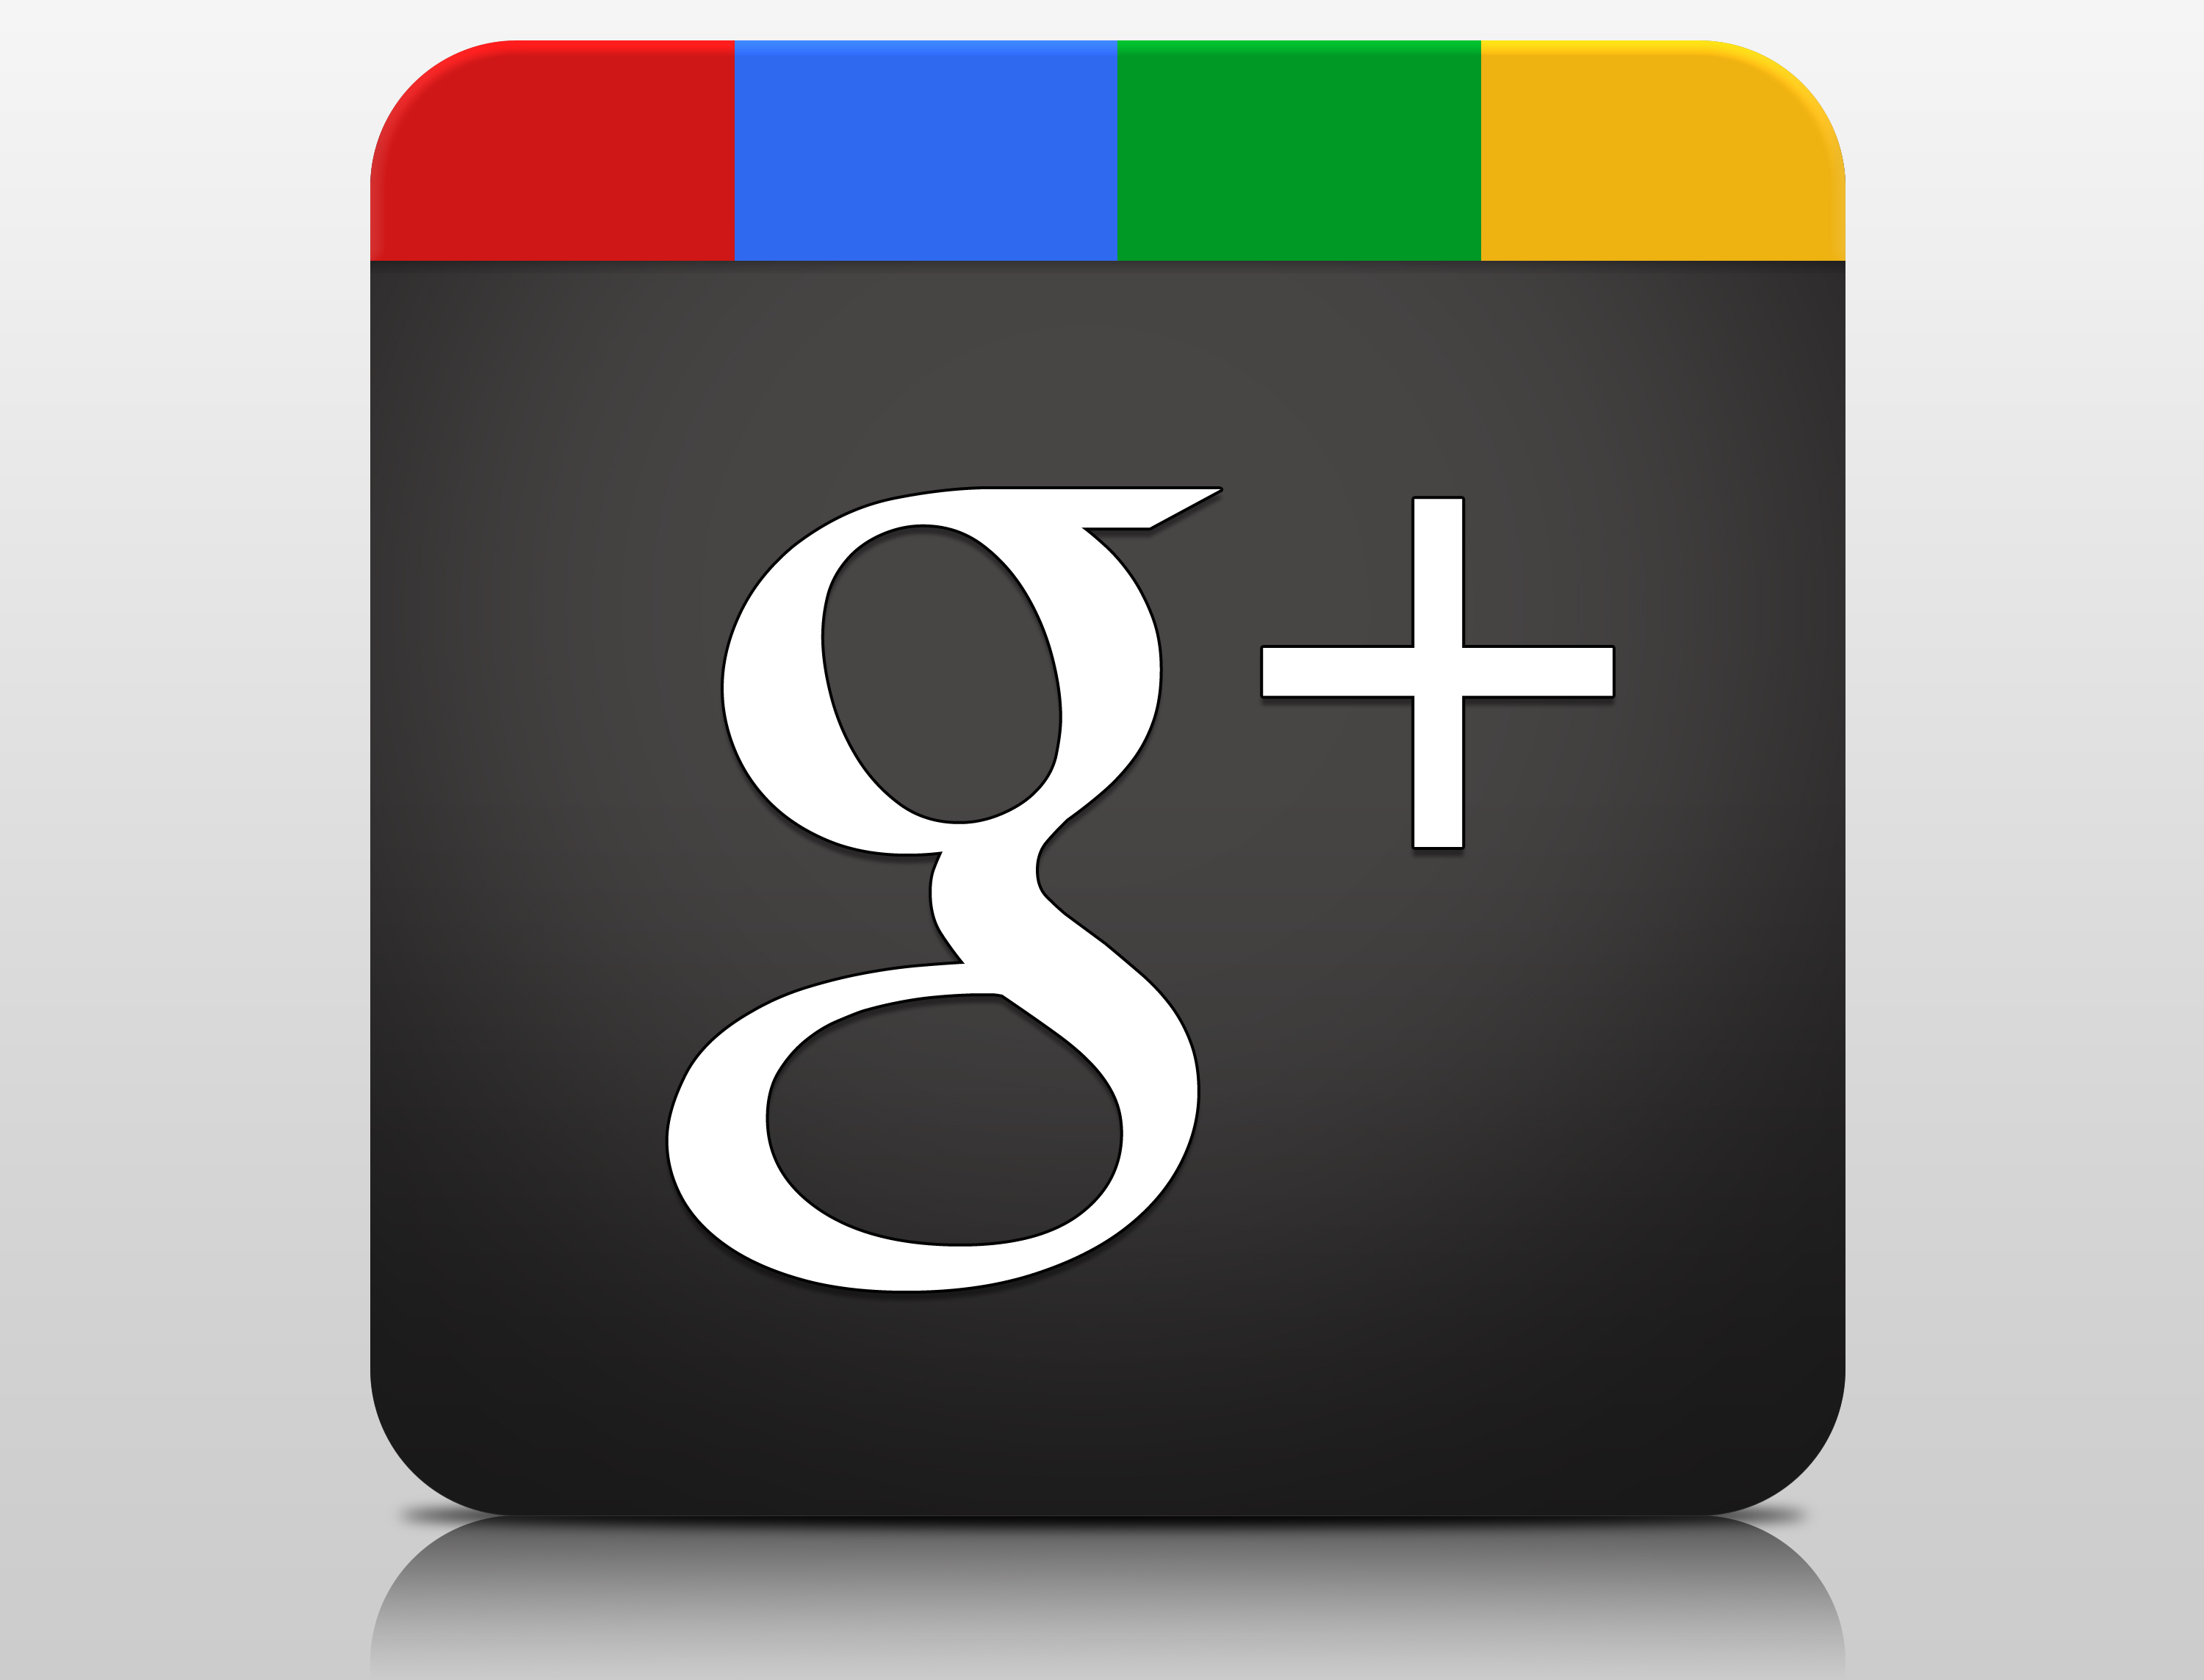 Has Apple Deliberately Delayed The Google+ App?